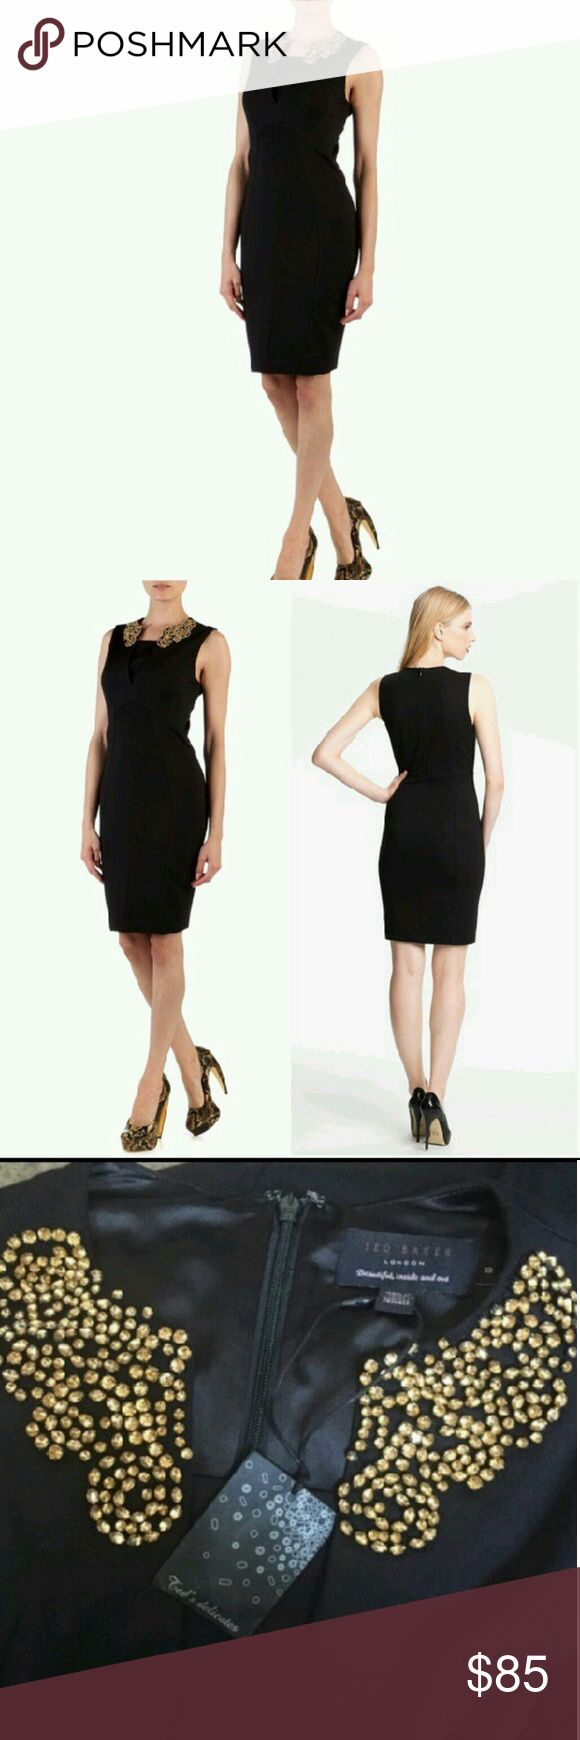 Ted Baker Gold Embell. Neckline Black Dress Black dress just above the knees (I am 5'6), perfectly embellished with gold beading around the neckline (only on the front). A super cute, very sophisticated and modest dress perfect for any occasion. This is a size 0. Ted Baker Dresses